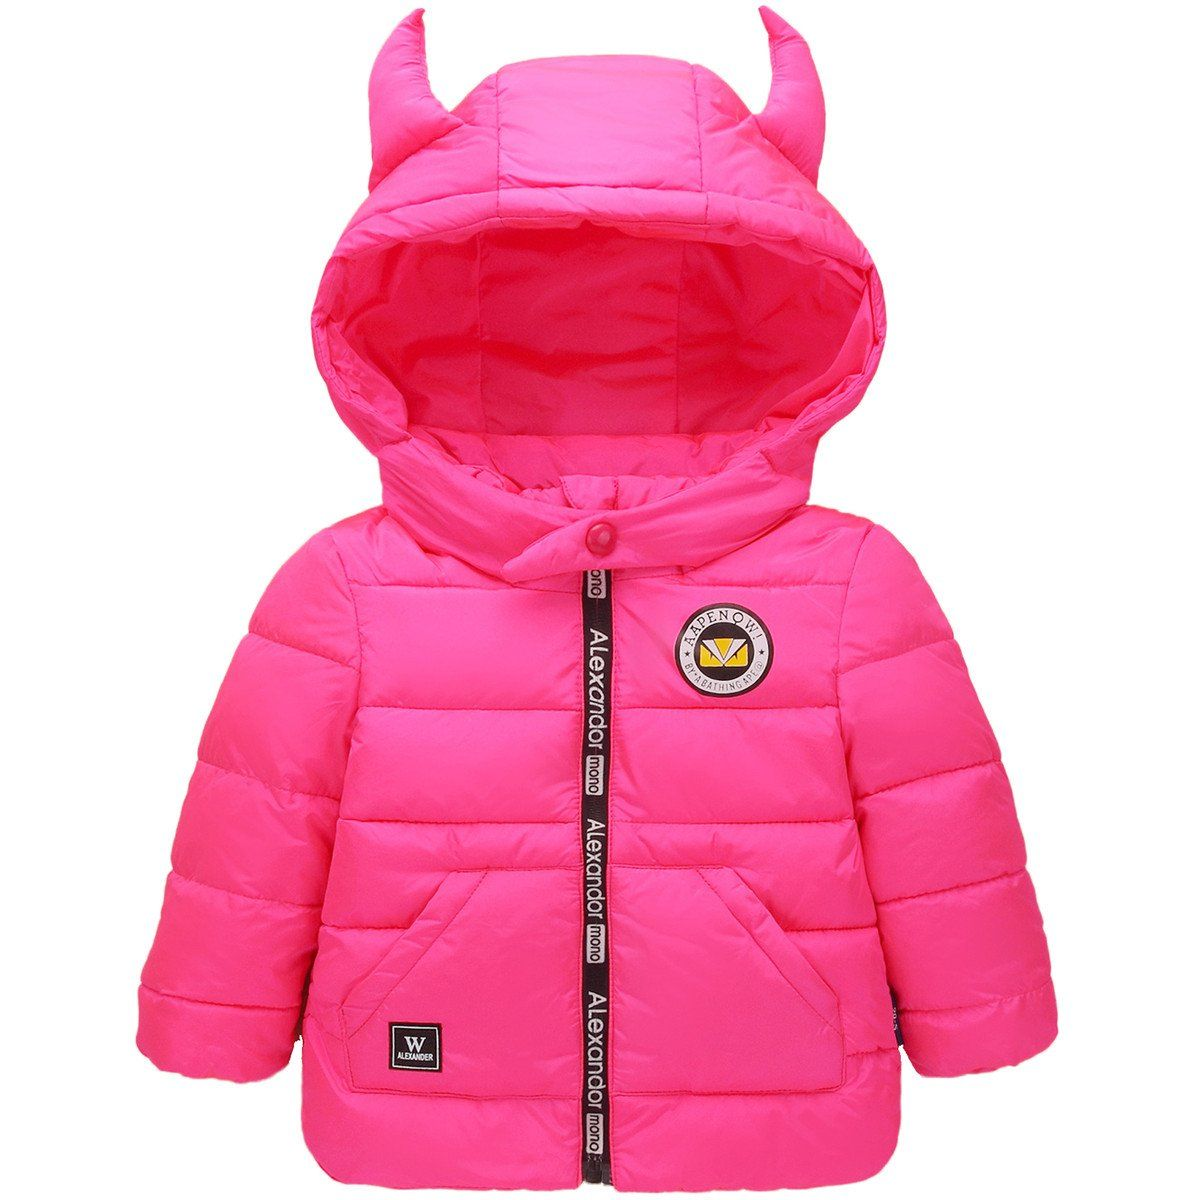 befff15b9 Little Boys Girls Kids Lightweight Horns Hooded Puffer Coat Down ...